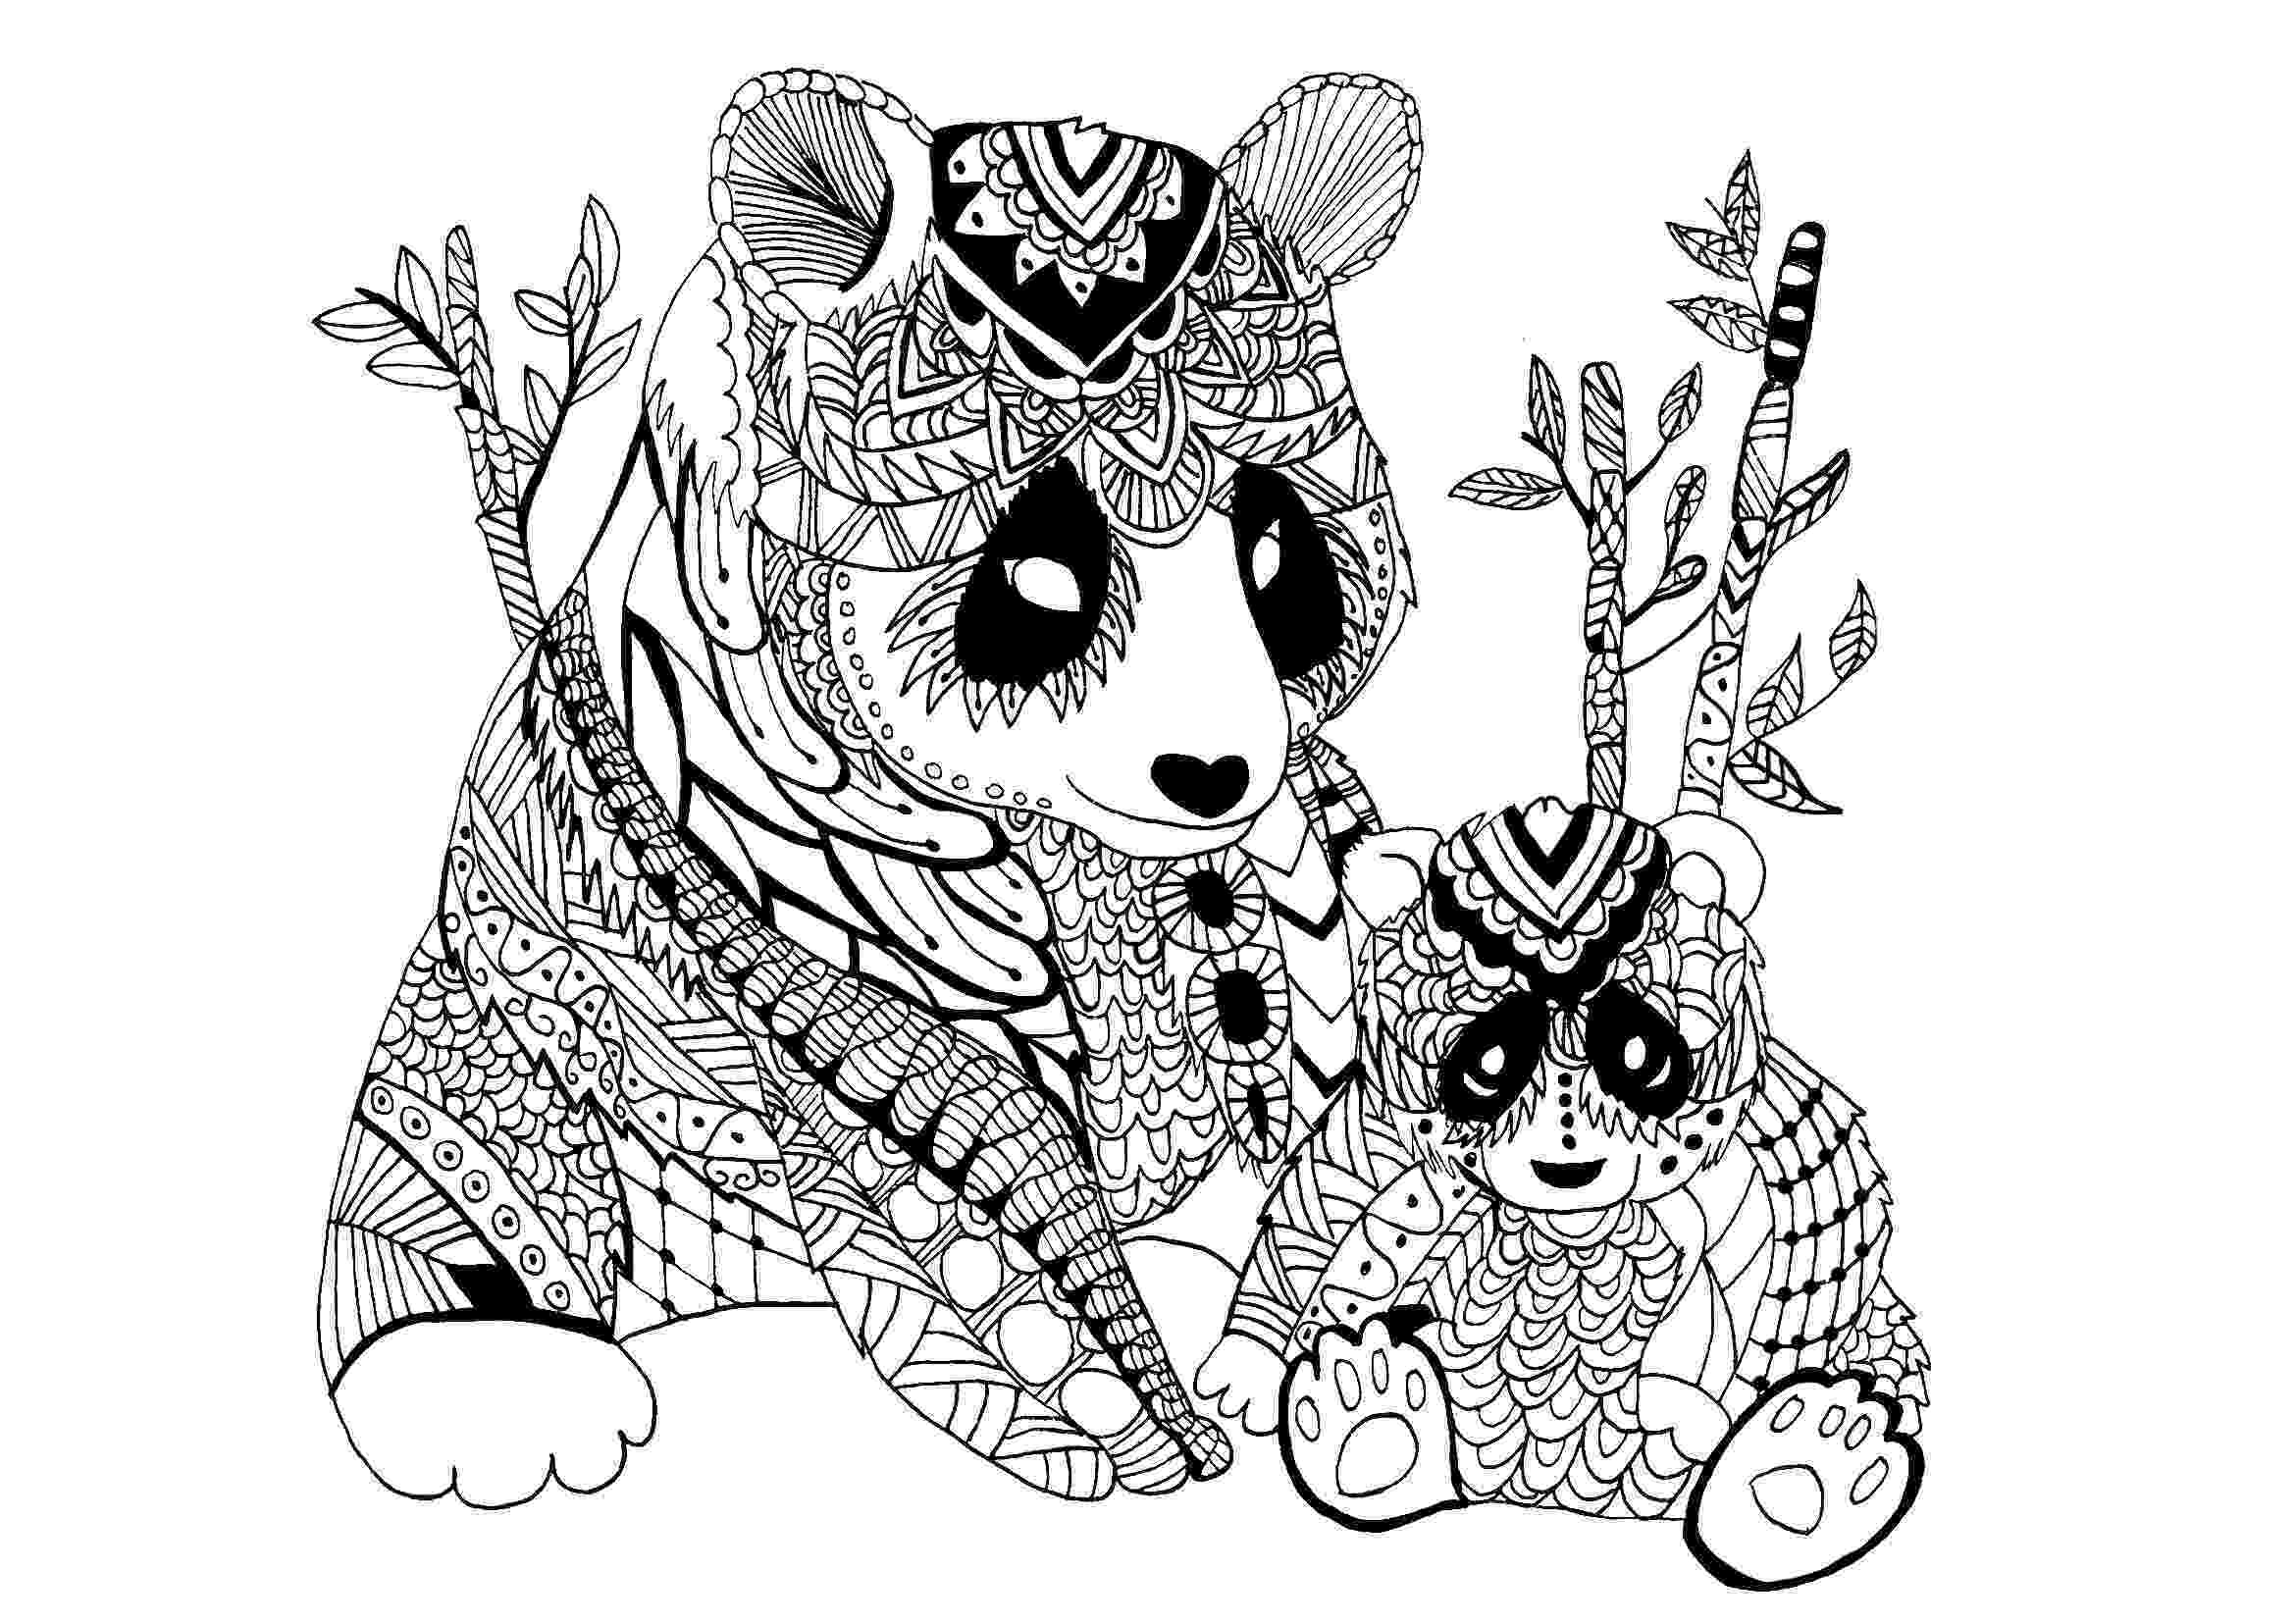 panda pictures to color panda coloring pages free printable enjoy coloring to color panda pictures